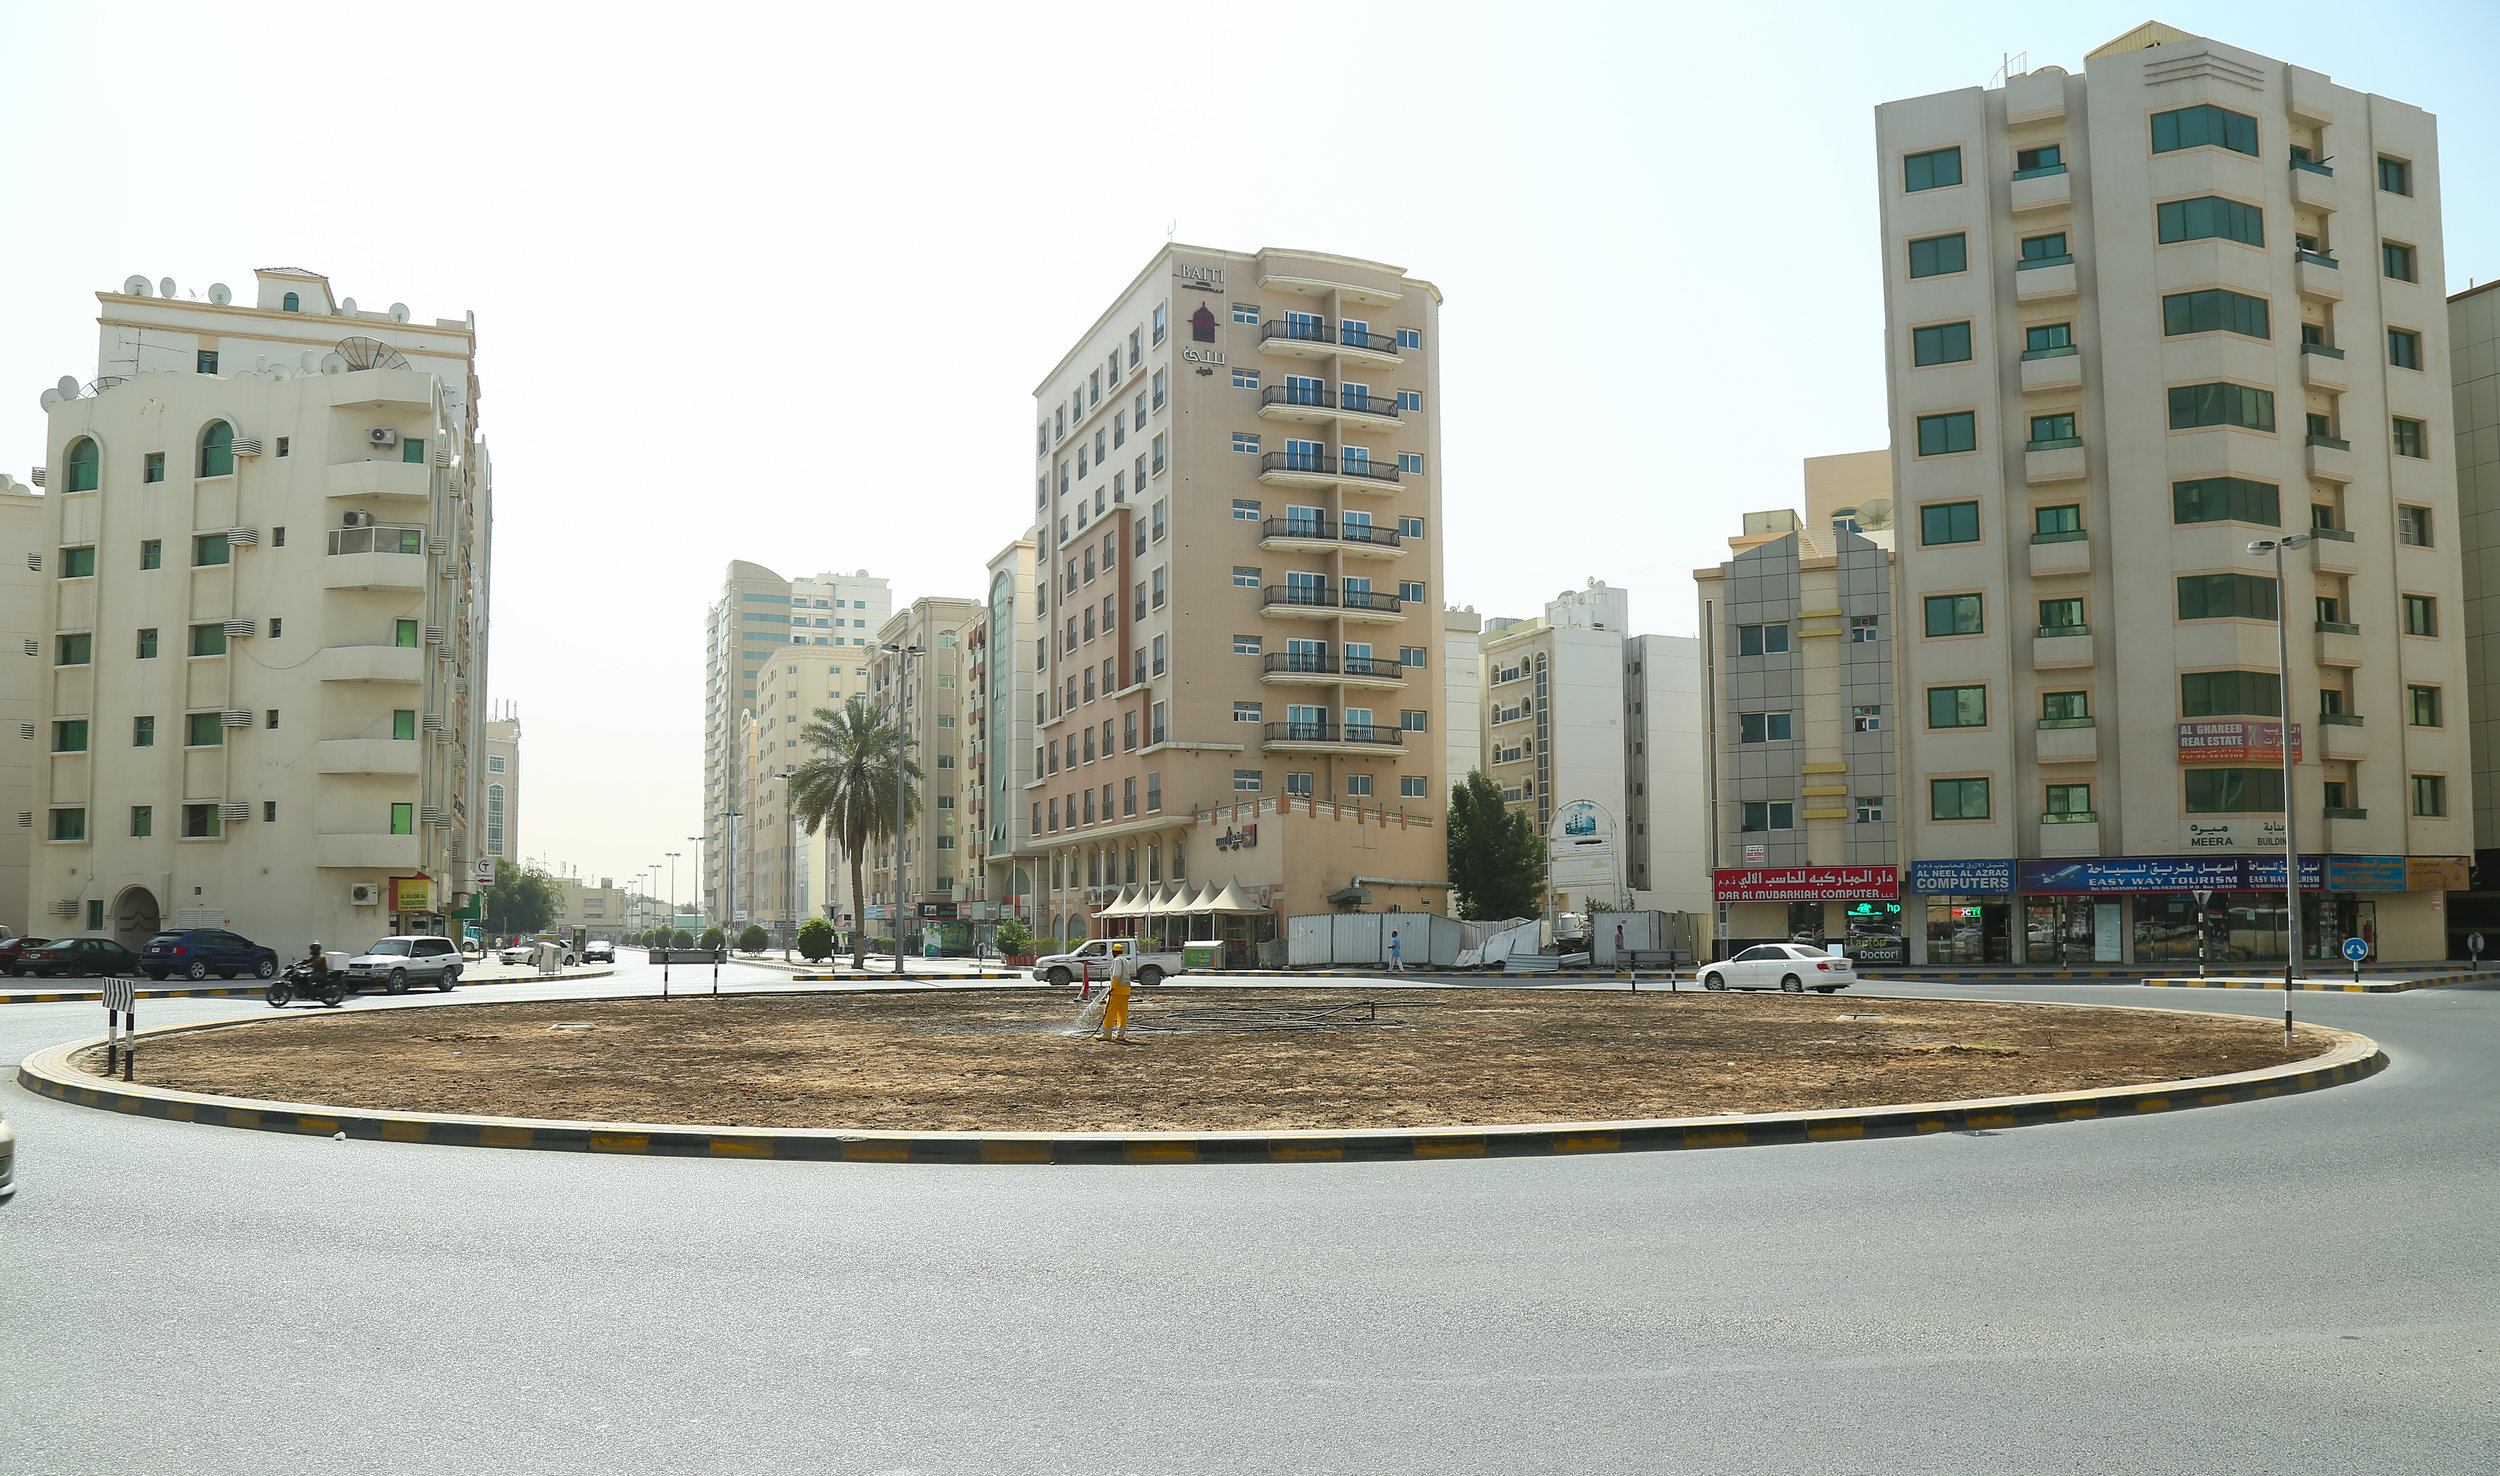 Vikram Divecha, Beej, 2017.Intervention at roundabout in Al Naba'ah area of Sharjah. Installation view, Sharjah Biennial 13, 2017. Unregistered seeds, soil, water and supplies. Commissioned by Sharjah Art Foundation.Courtesy of the artist. Image Courtesy of Sharjah Art Foundation.